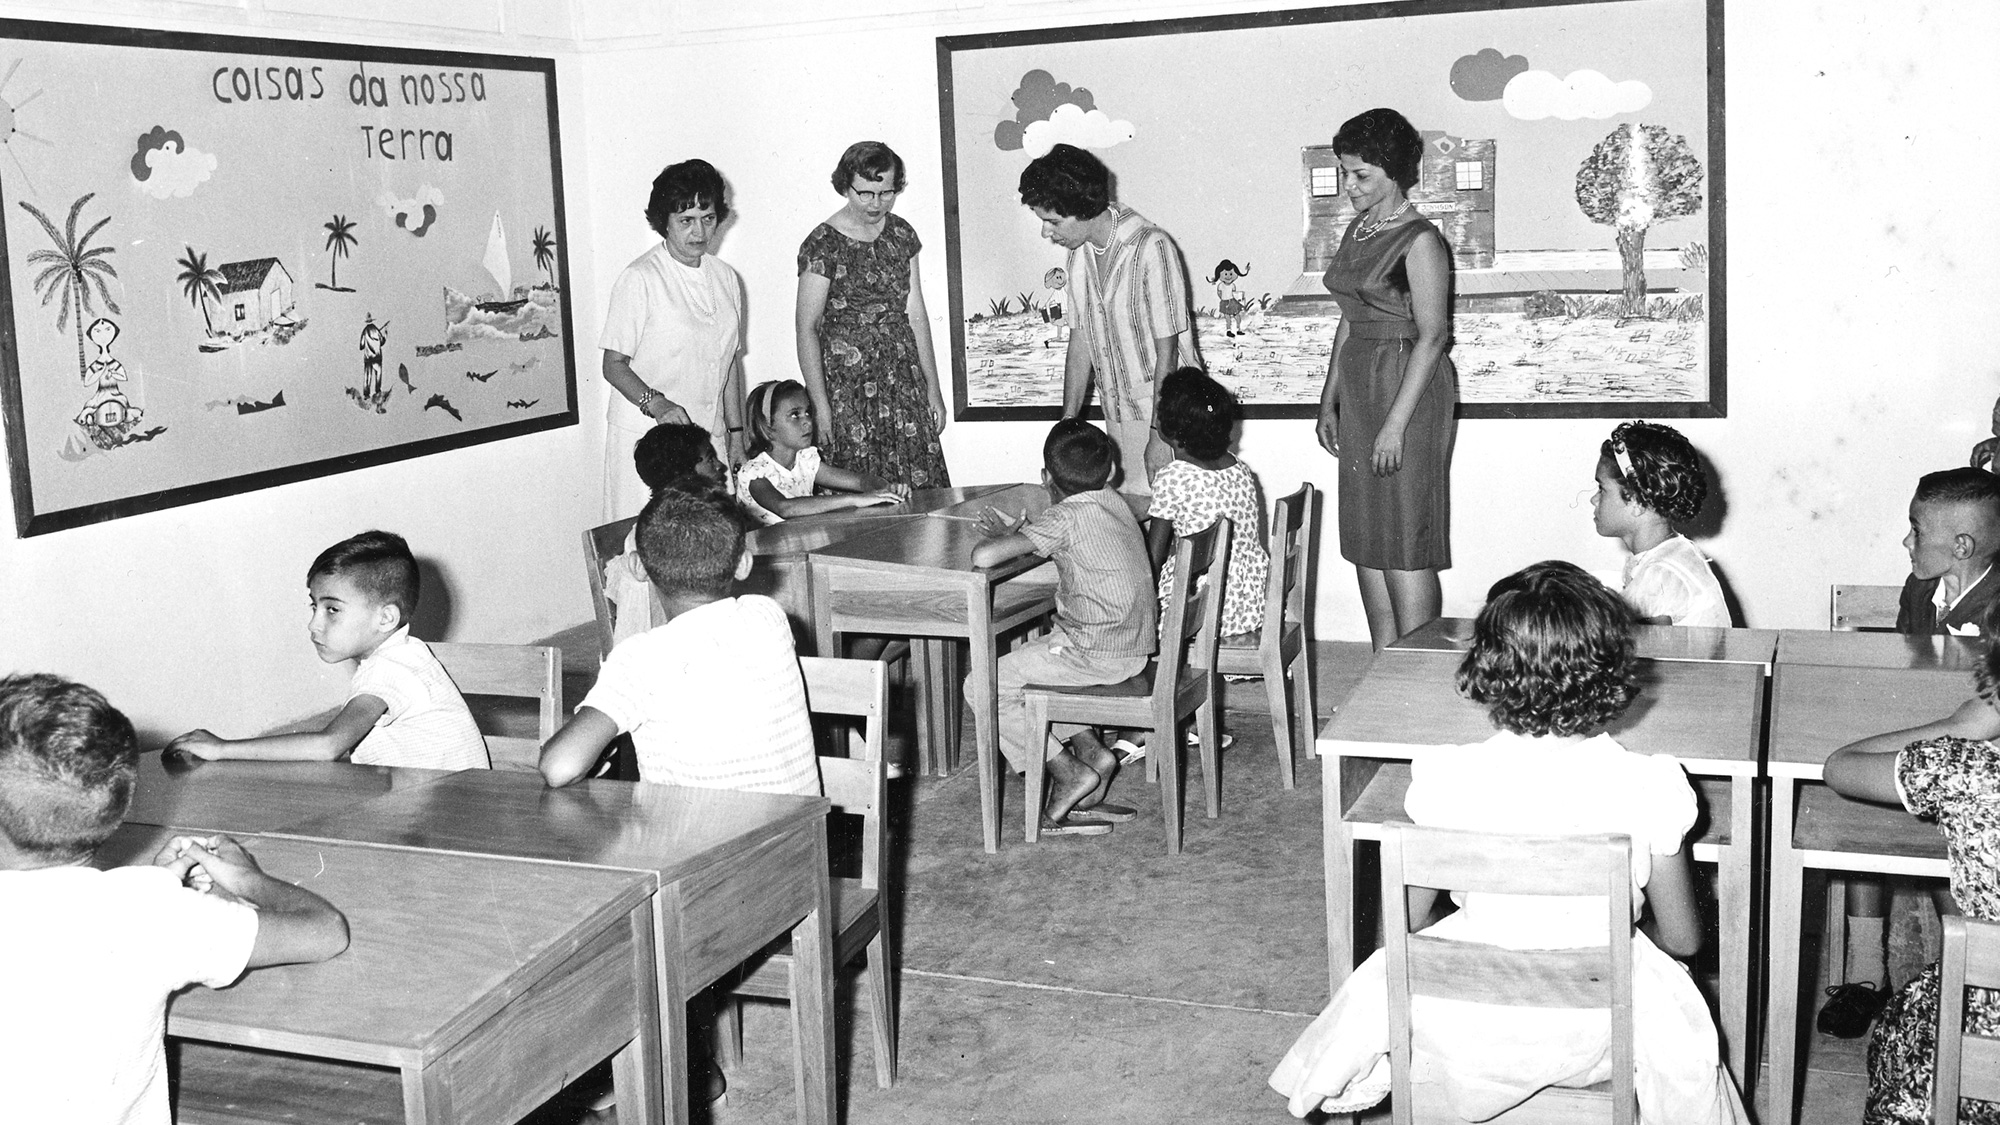 H.F. Johnson Jr. a înființat Escola Johnson în 1960